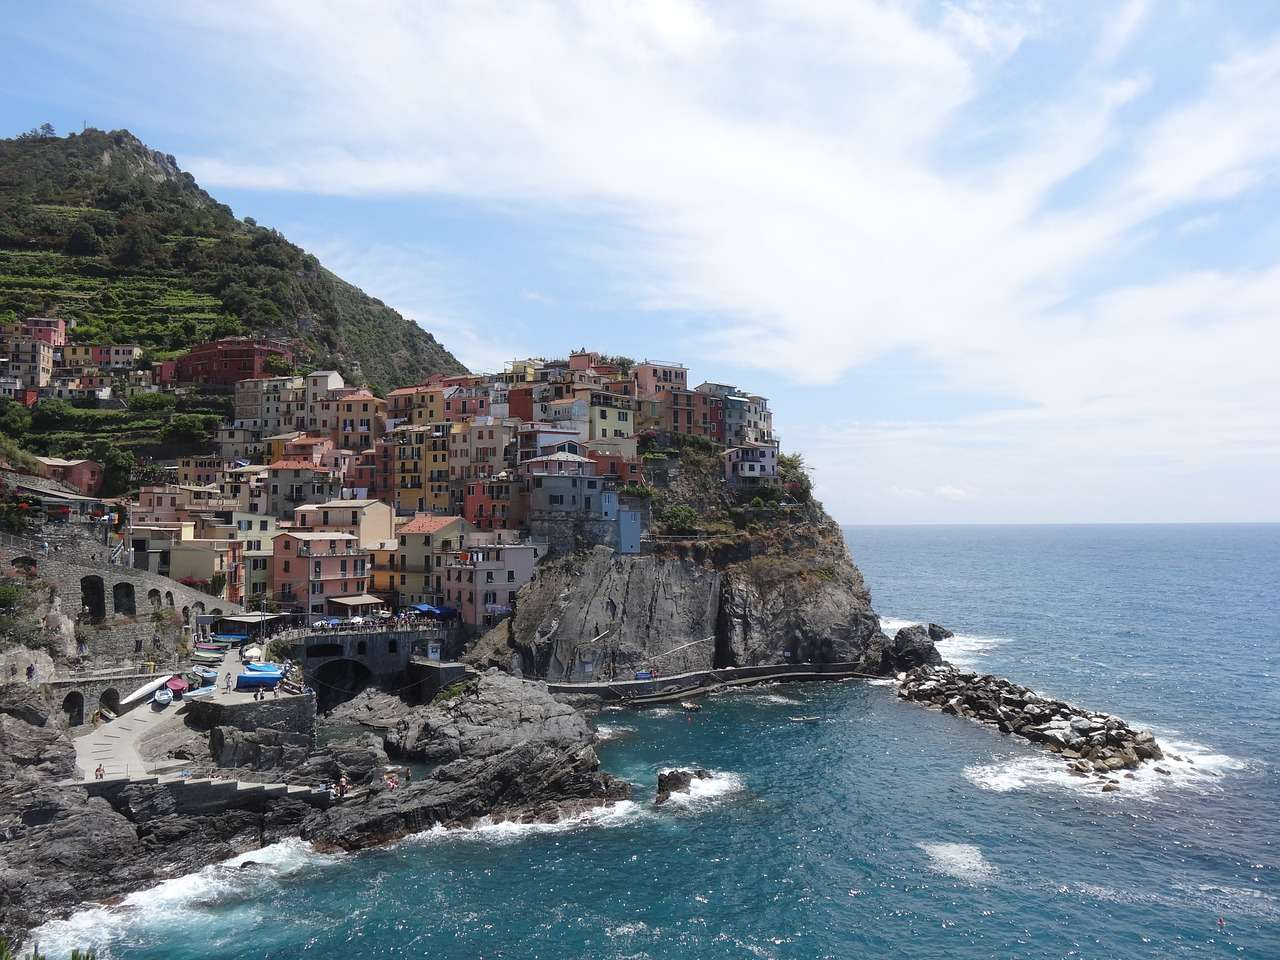 manarola - Best Places To Visit in Italy